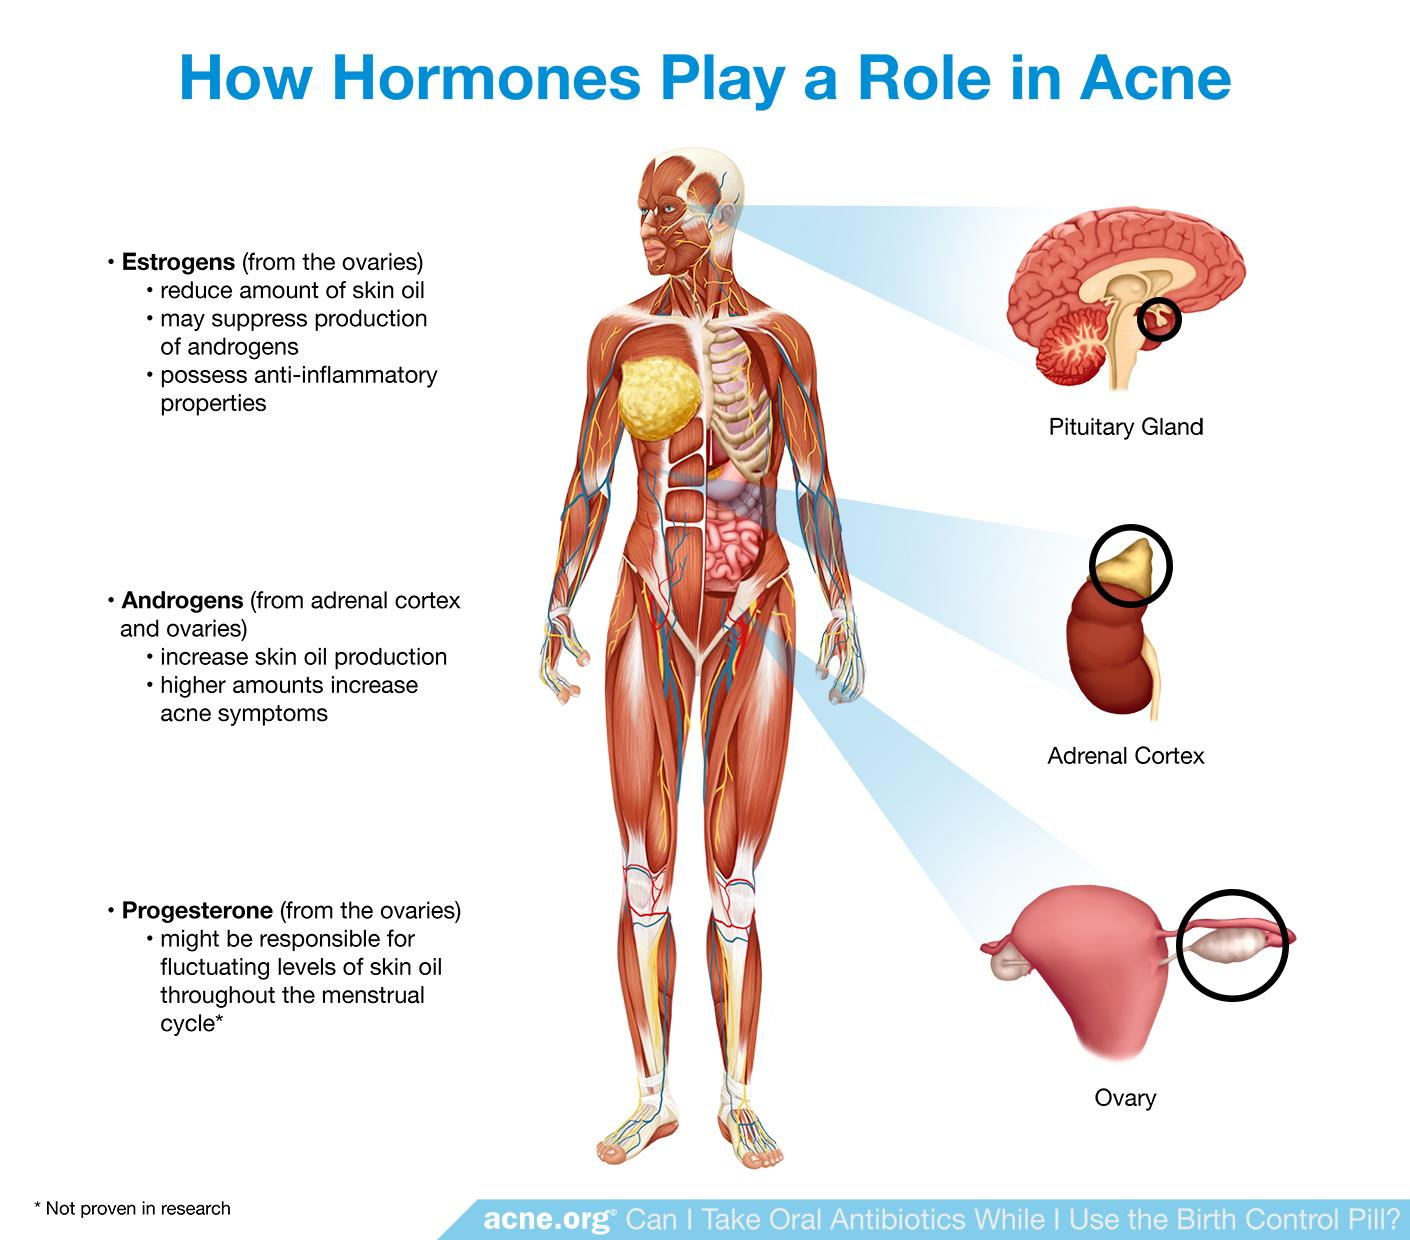 How Hormones Play a Role in Acne